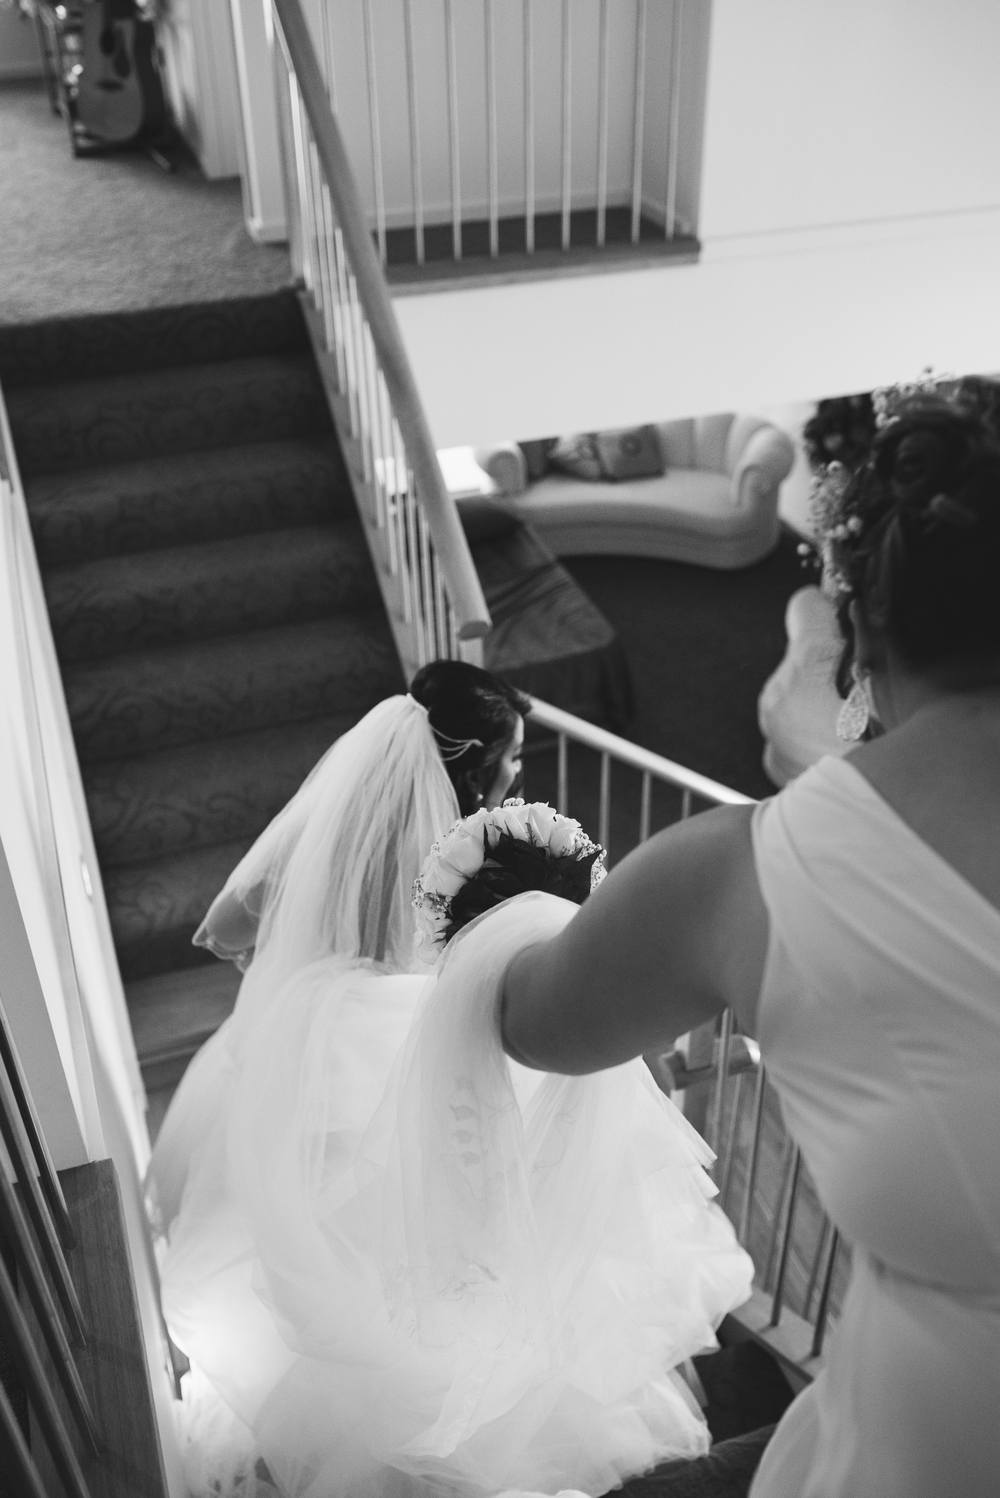 Siebel_Wedding_Black_&_White_High_Res_THP-162.jpg